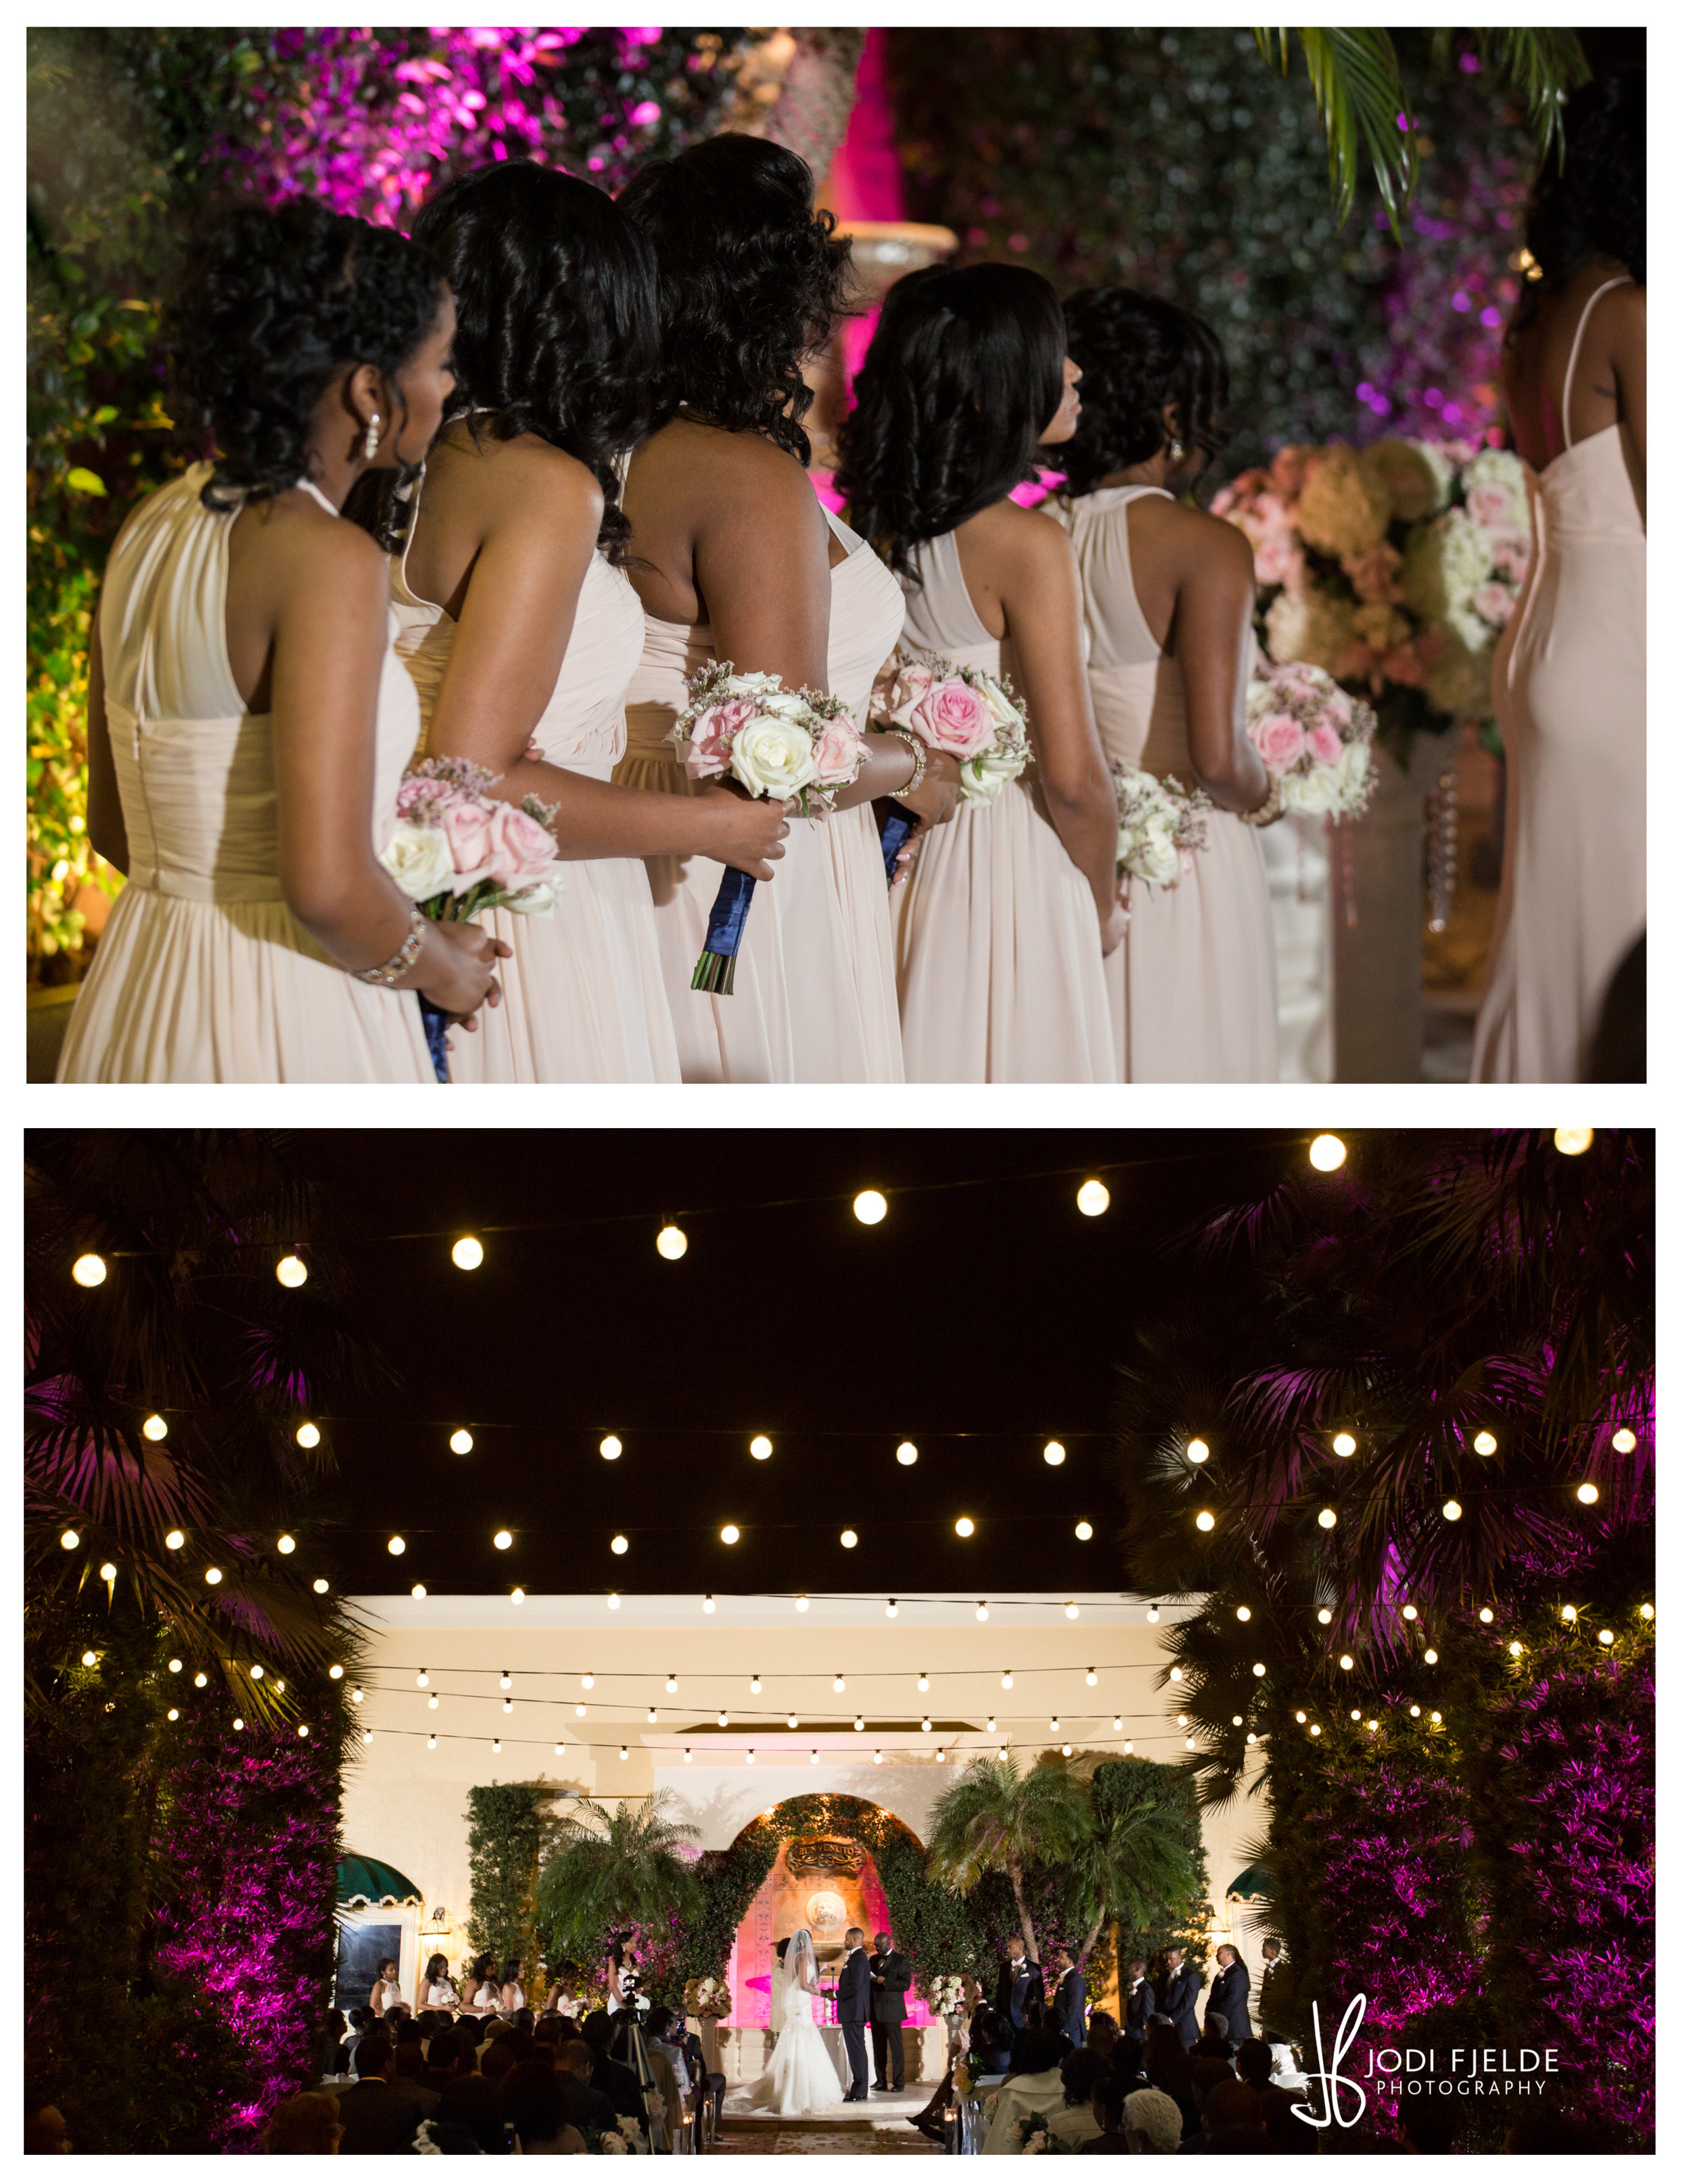 Benvenuto_wedding_Boynton_Beach_Jodi_Fjelde_Photography_Nikki_Otis_married_16.jpg